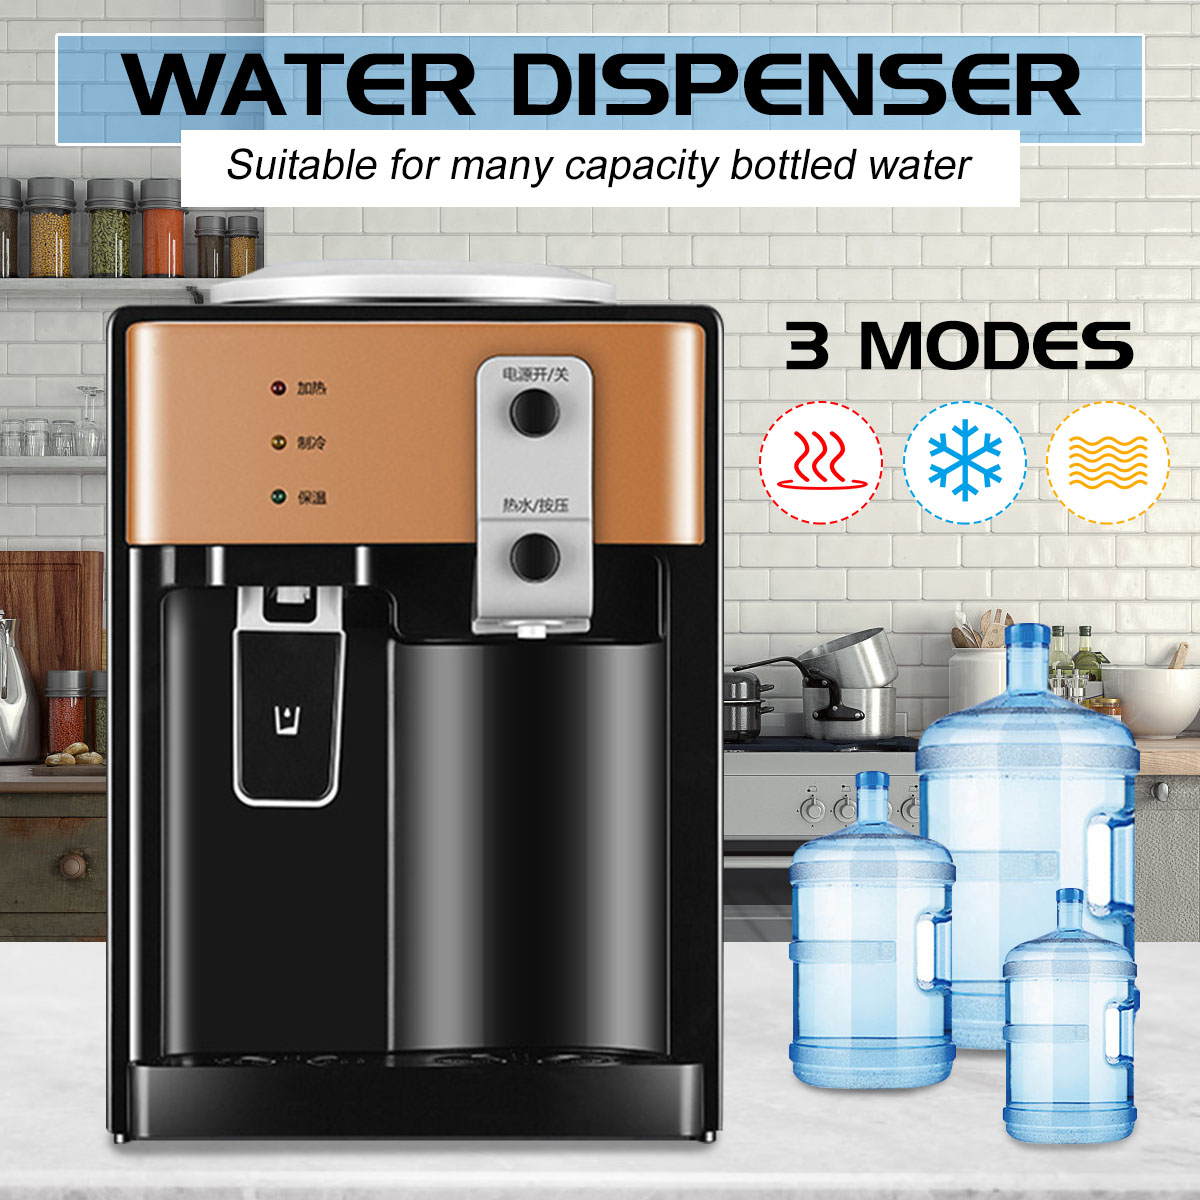 AUGIENB 220V 550W Electric Water Dispenser Desktop Cold Hot Ice Water Cooler Heater Drinking Fountain Home Office Coffee Tea Bar